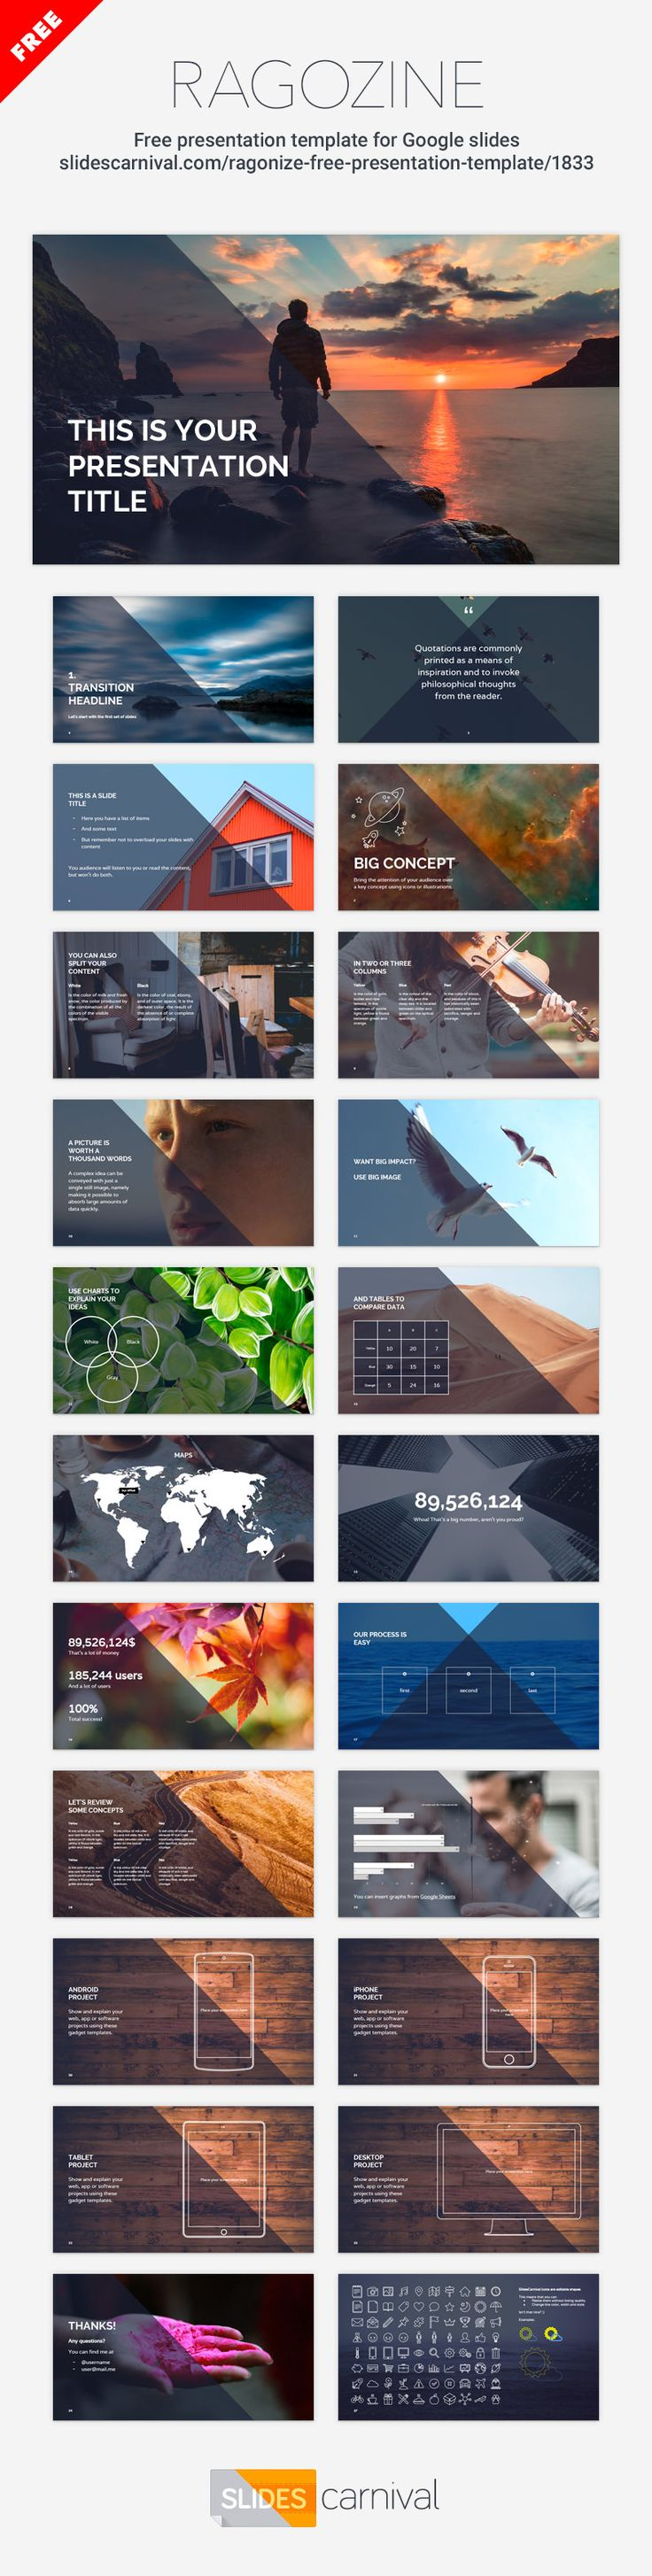 17 best ideas about presentation templates inspire your audience your presentation simply by using this photographic template whether